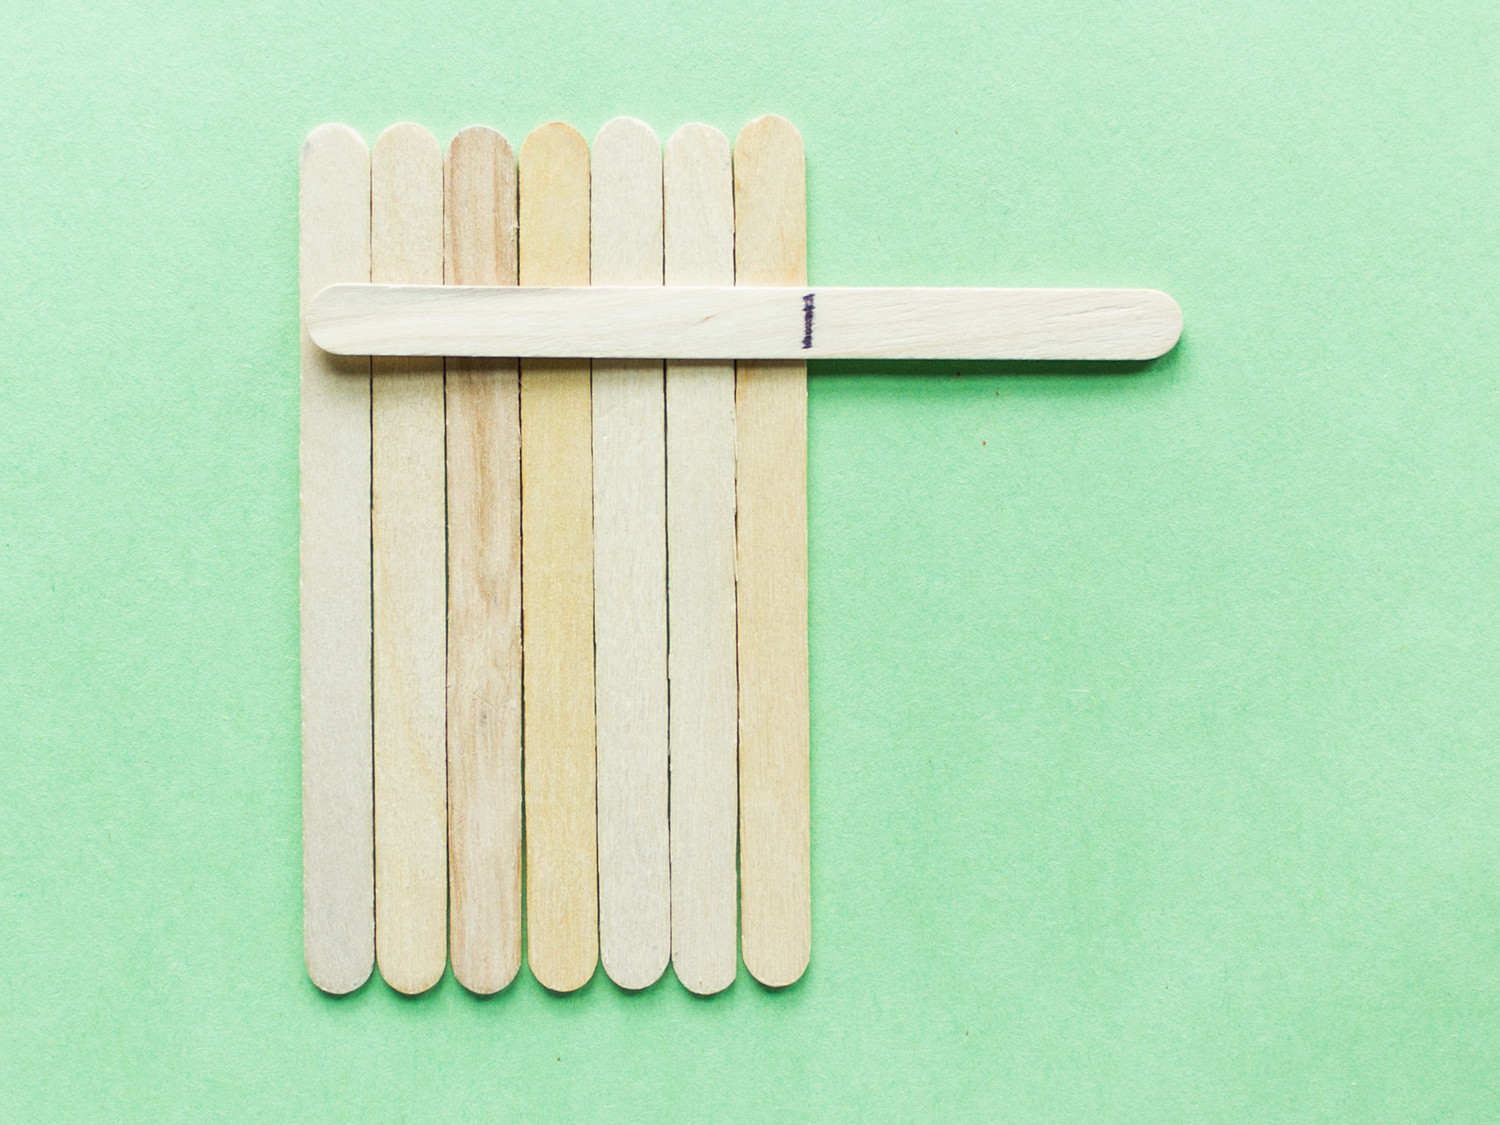 Craft Sticks Beautiful Blue Skies Ahead Guest Post Kirstylee From Moms Have Of Wonderful 50 Ideas Craft Sticks